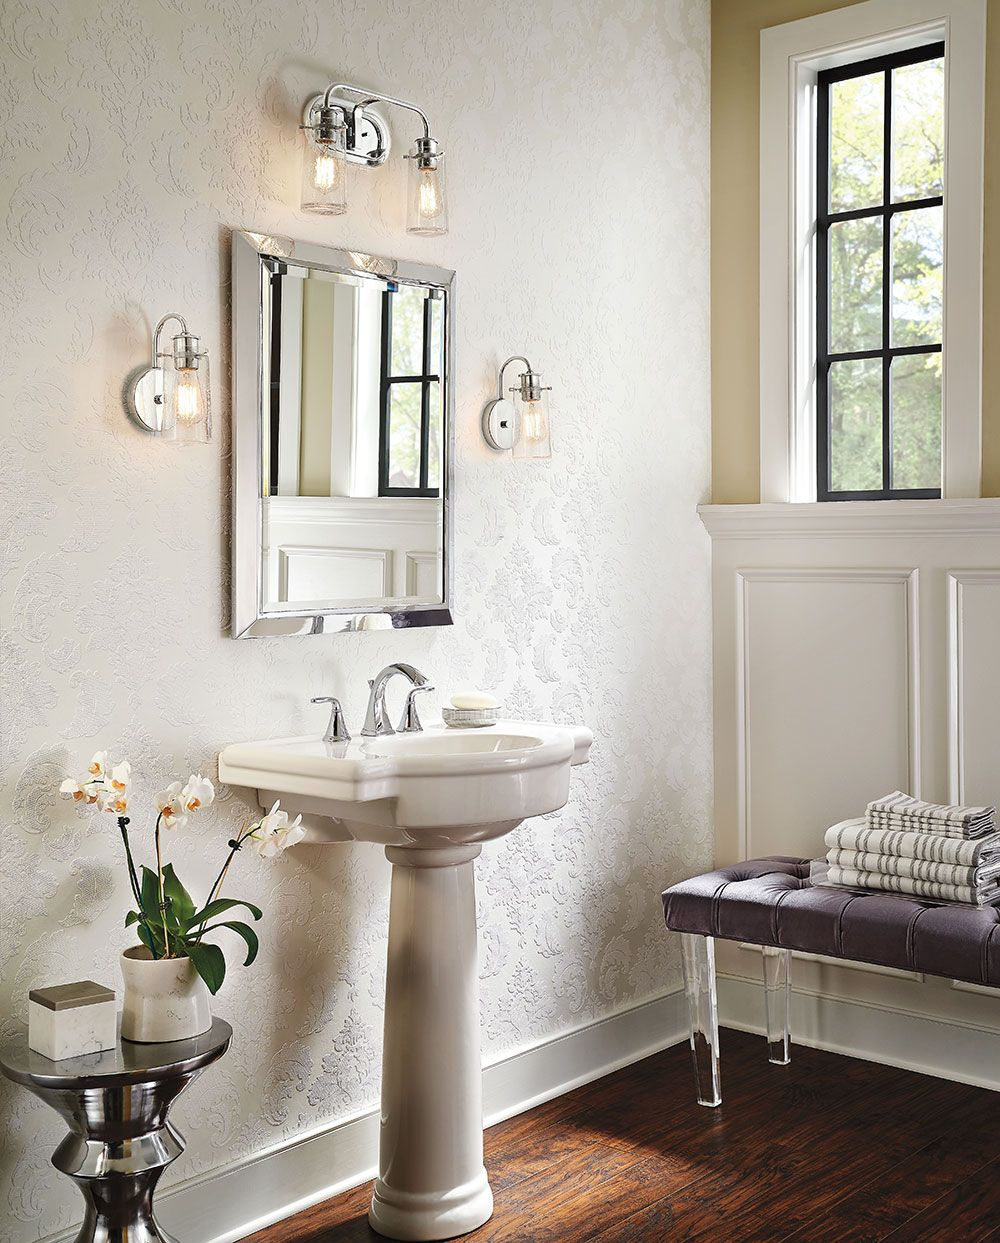 Simple Bathroom Wall Sconces : There's so much to love about the reclaimed style of the Braelyn? wall sconce by @kichlerstyle ...